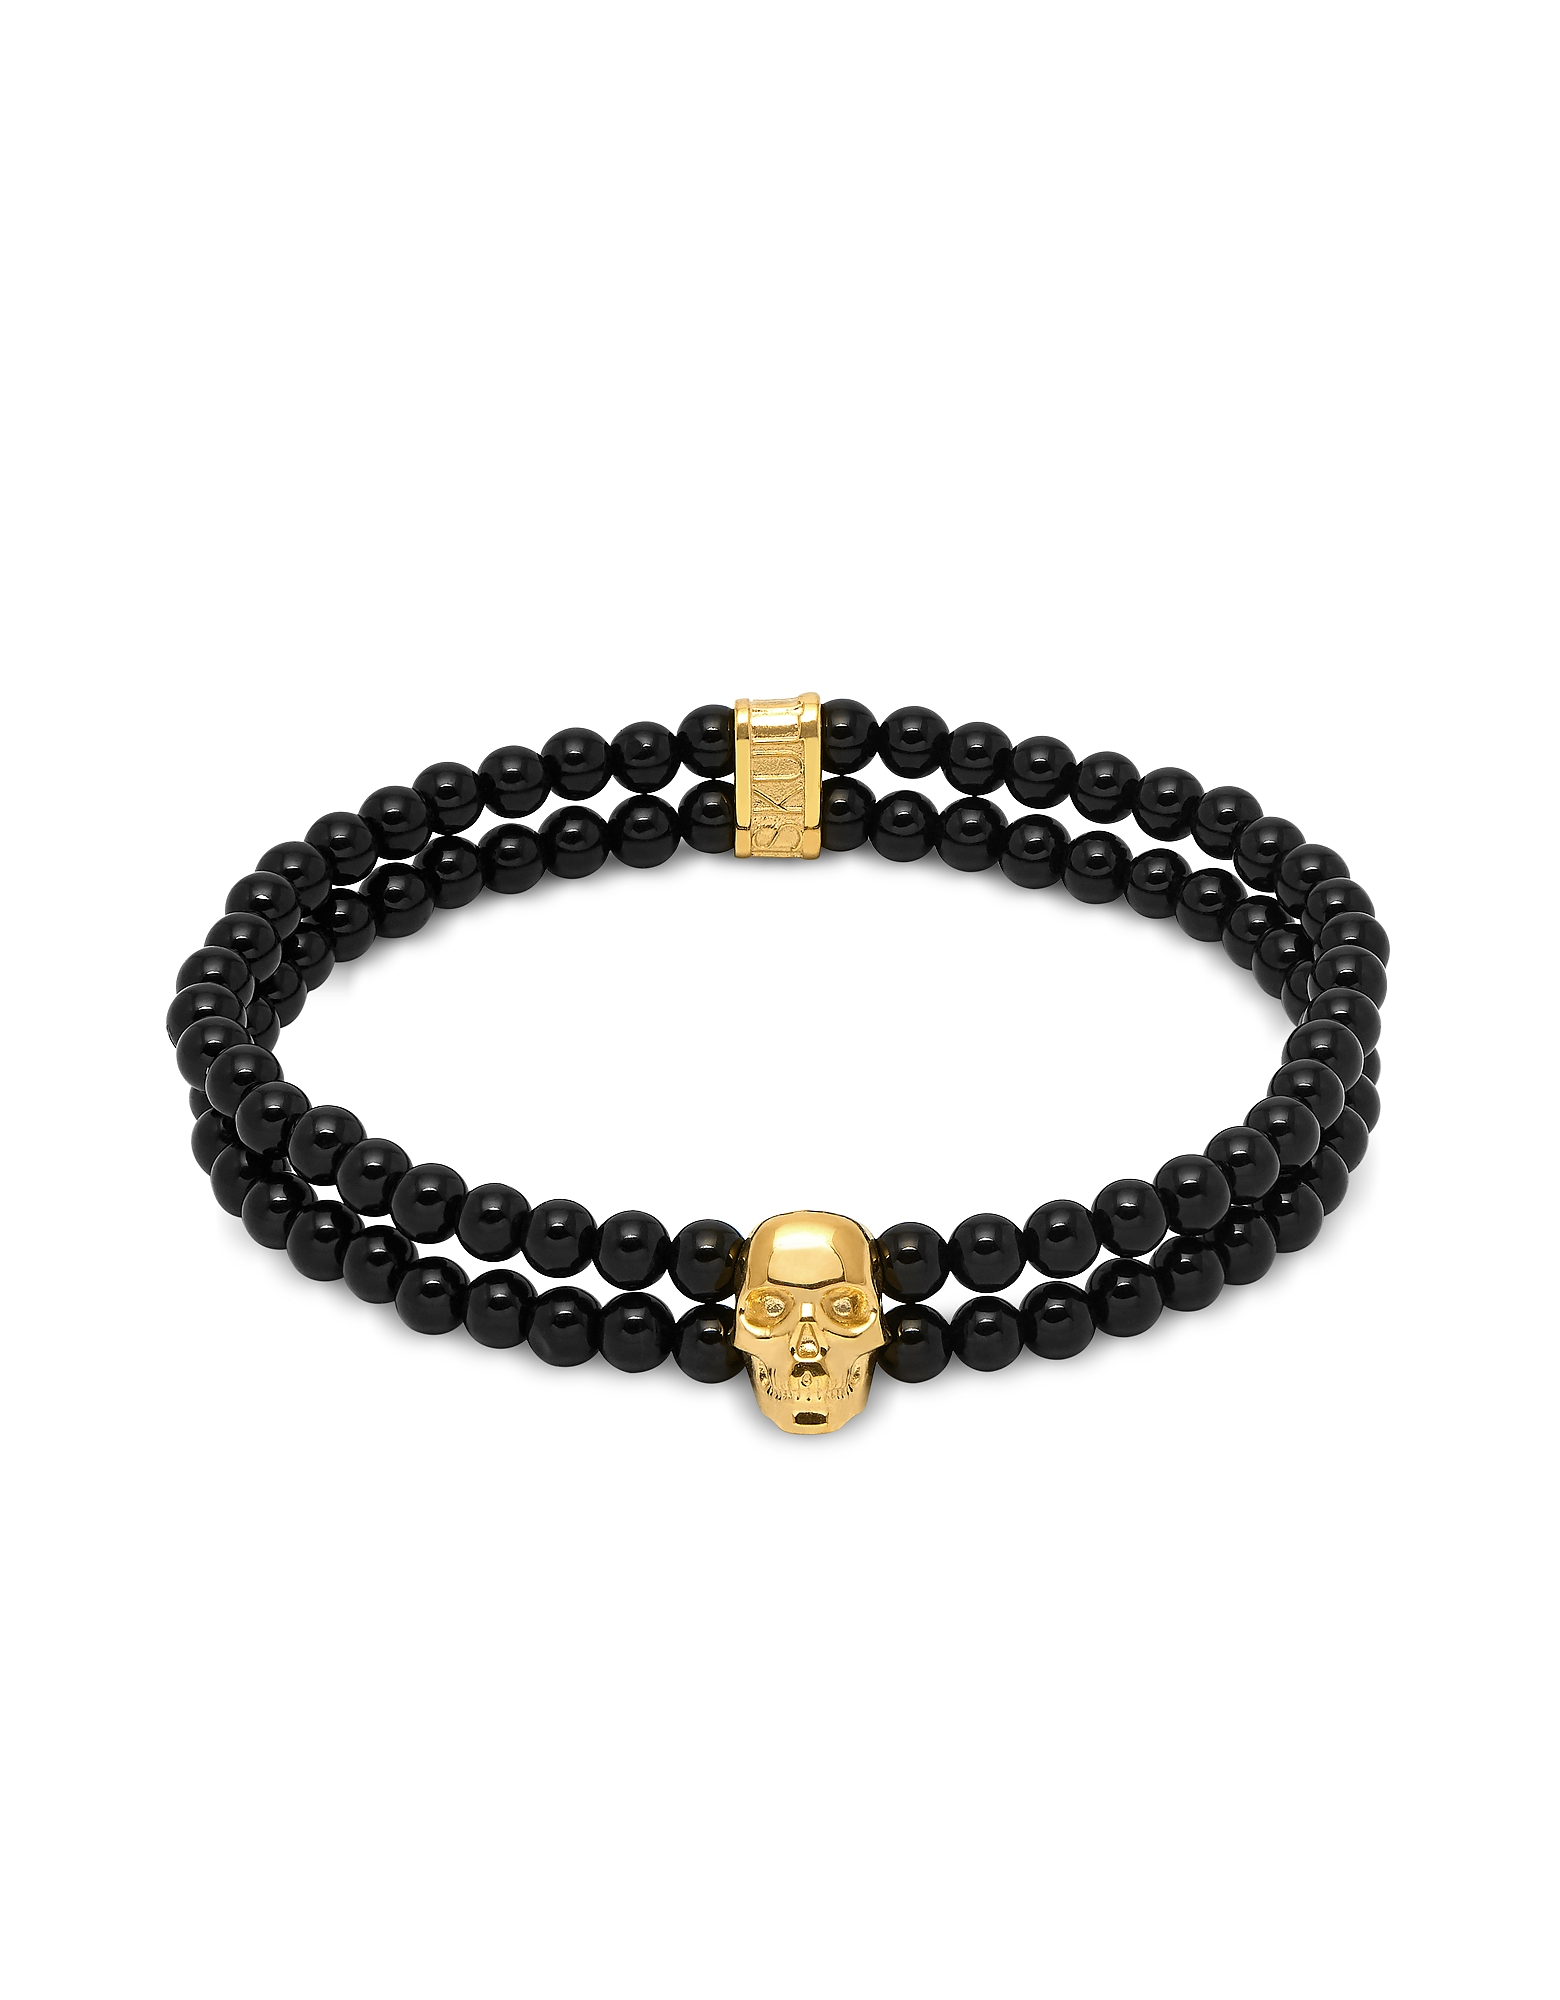 Double Row Beaded Bracelet With Skull Charmin Black Onyx & Gold